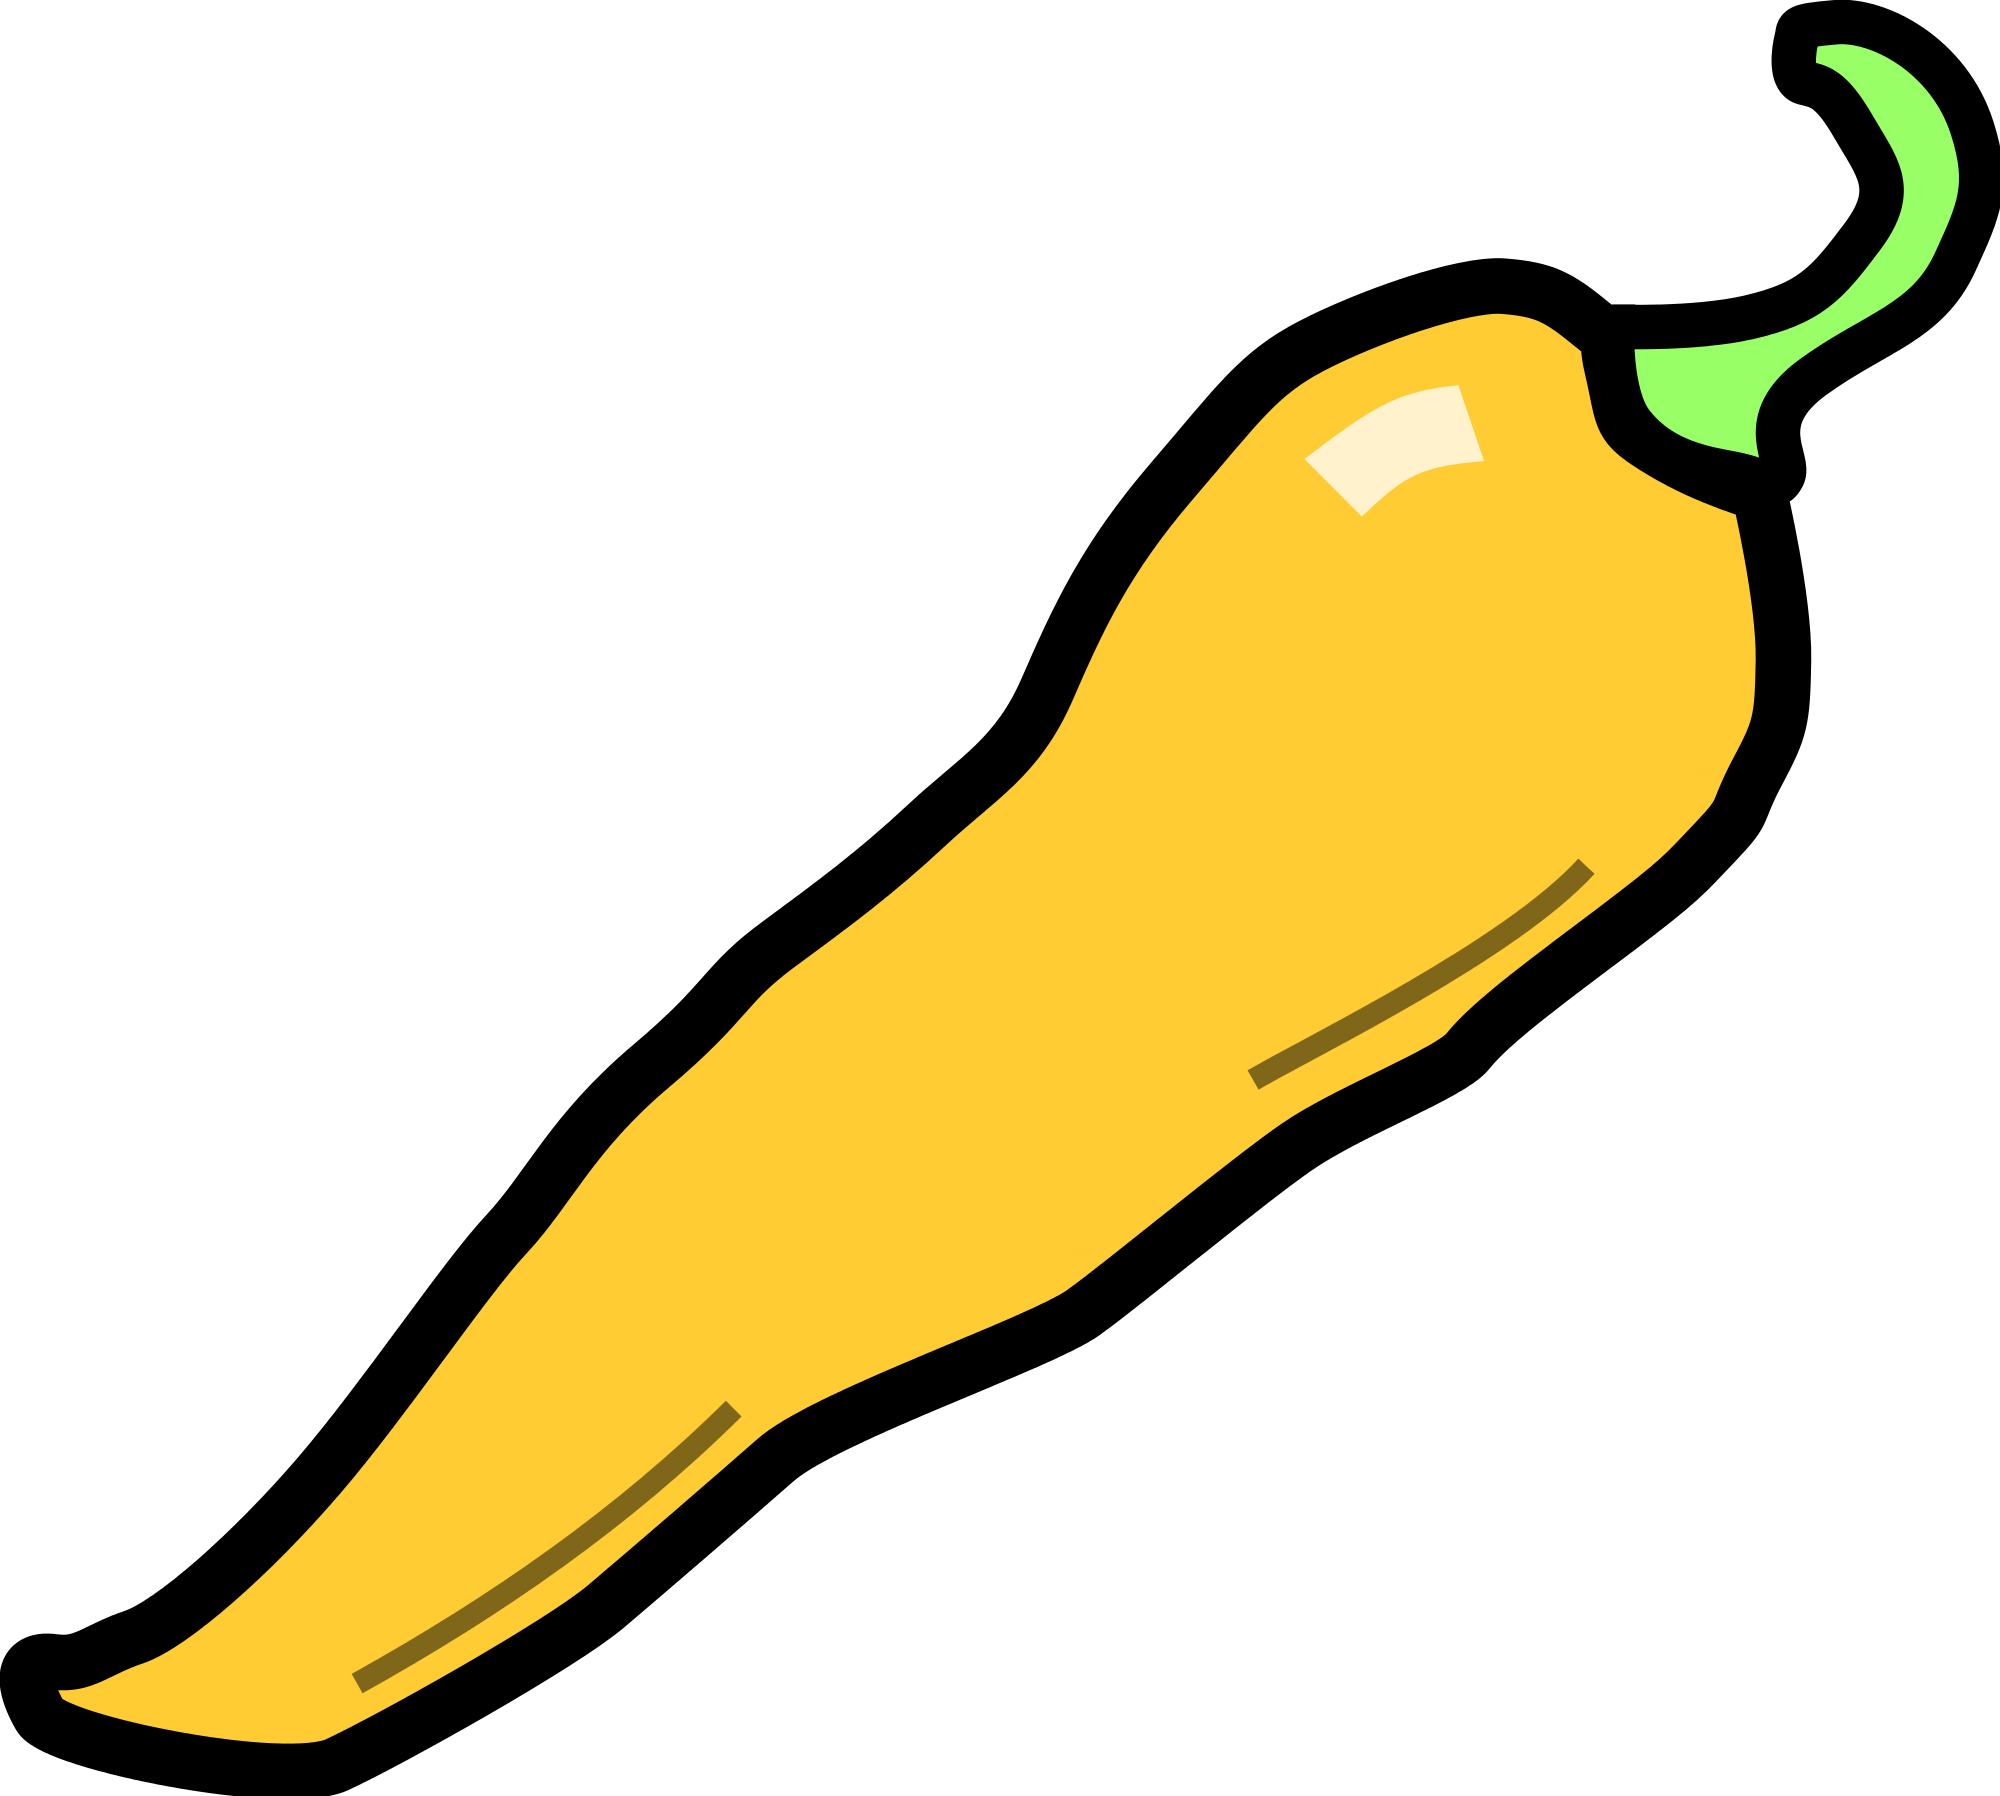 Bananas peppers png. File chilli pepper svg